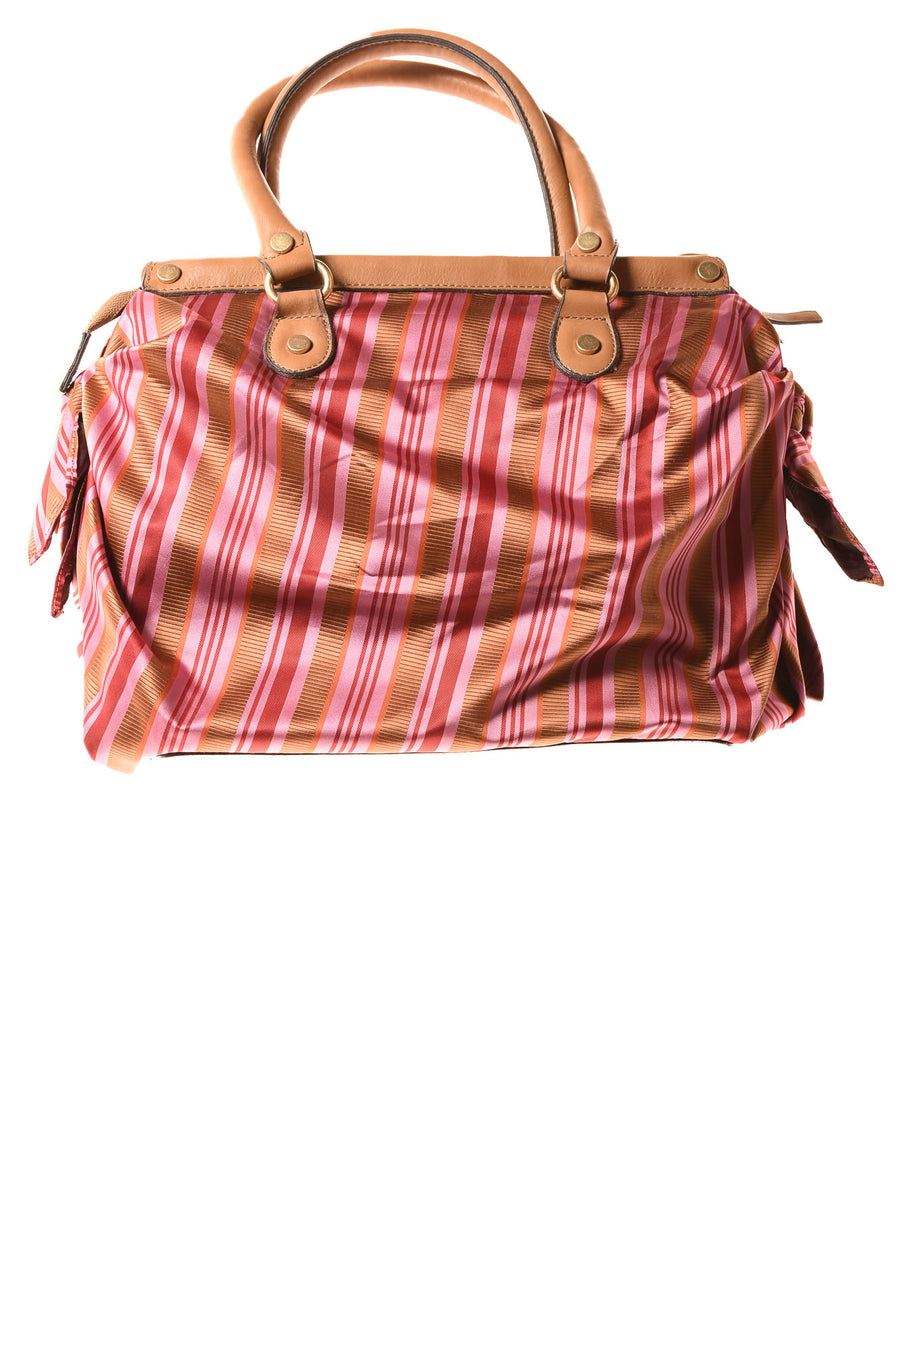 NEW Sophie Theallet Women's Handbag N/A Multi-Color / Striped